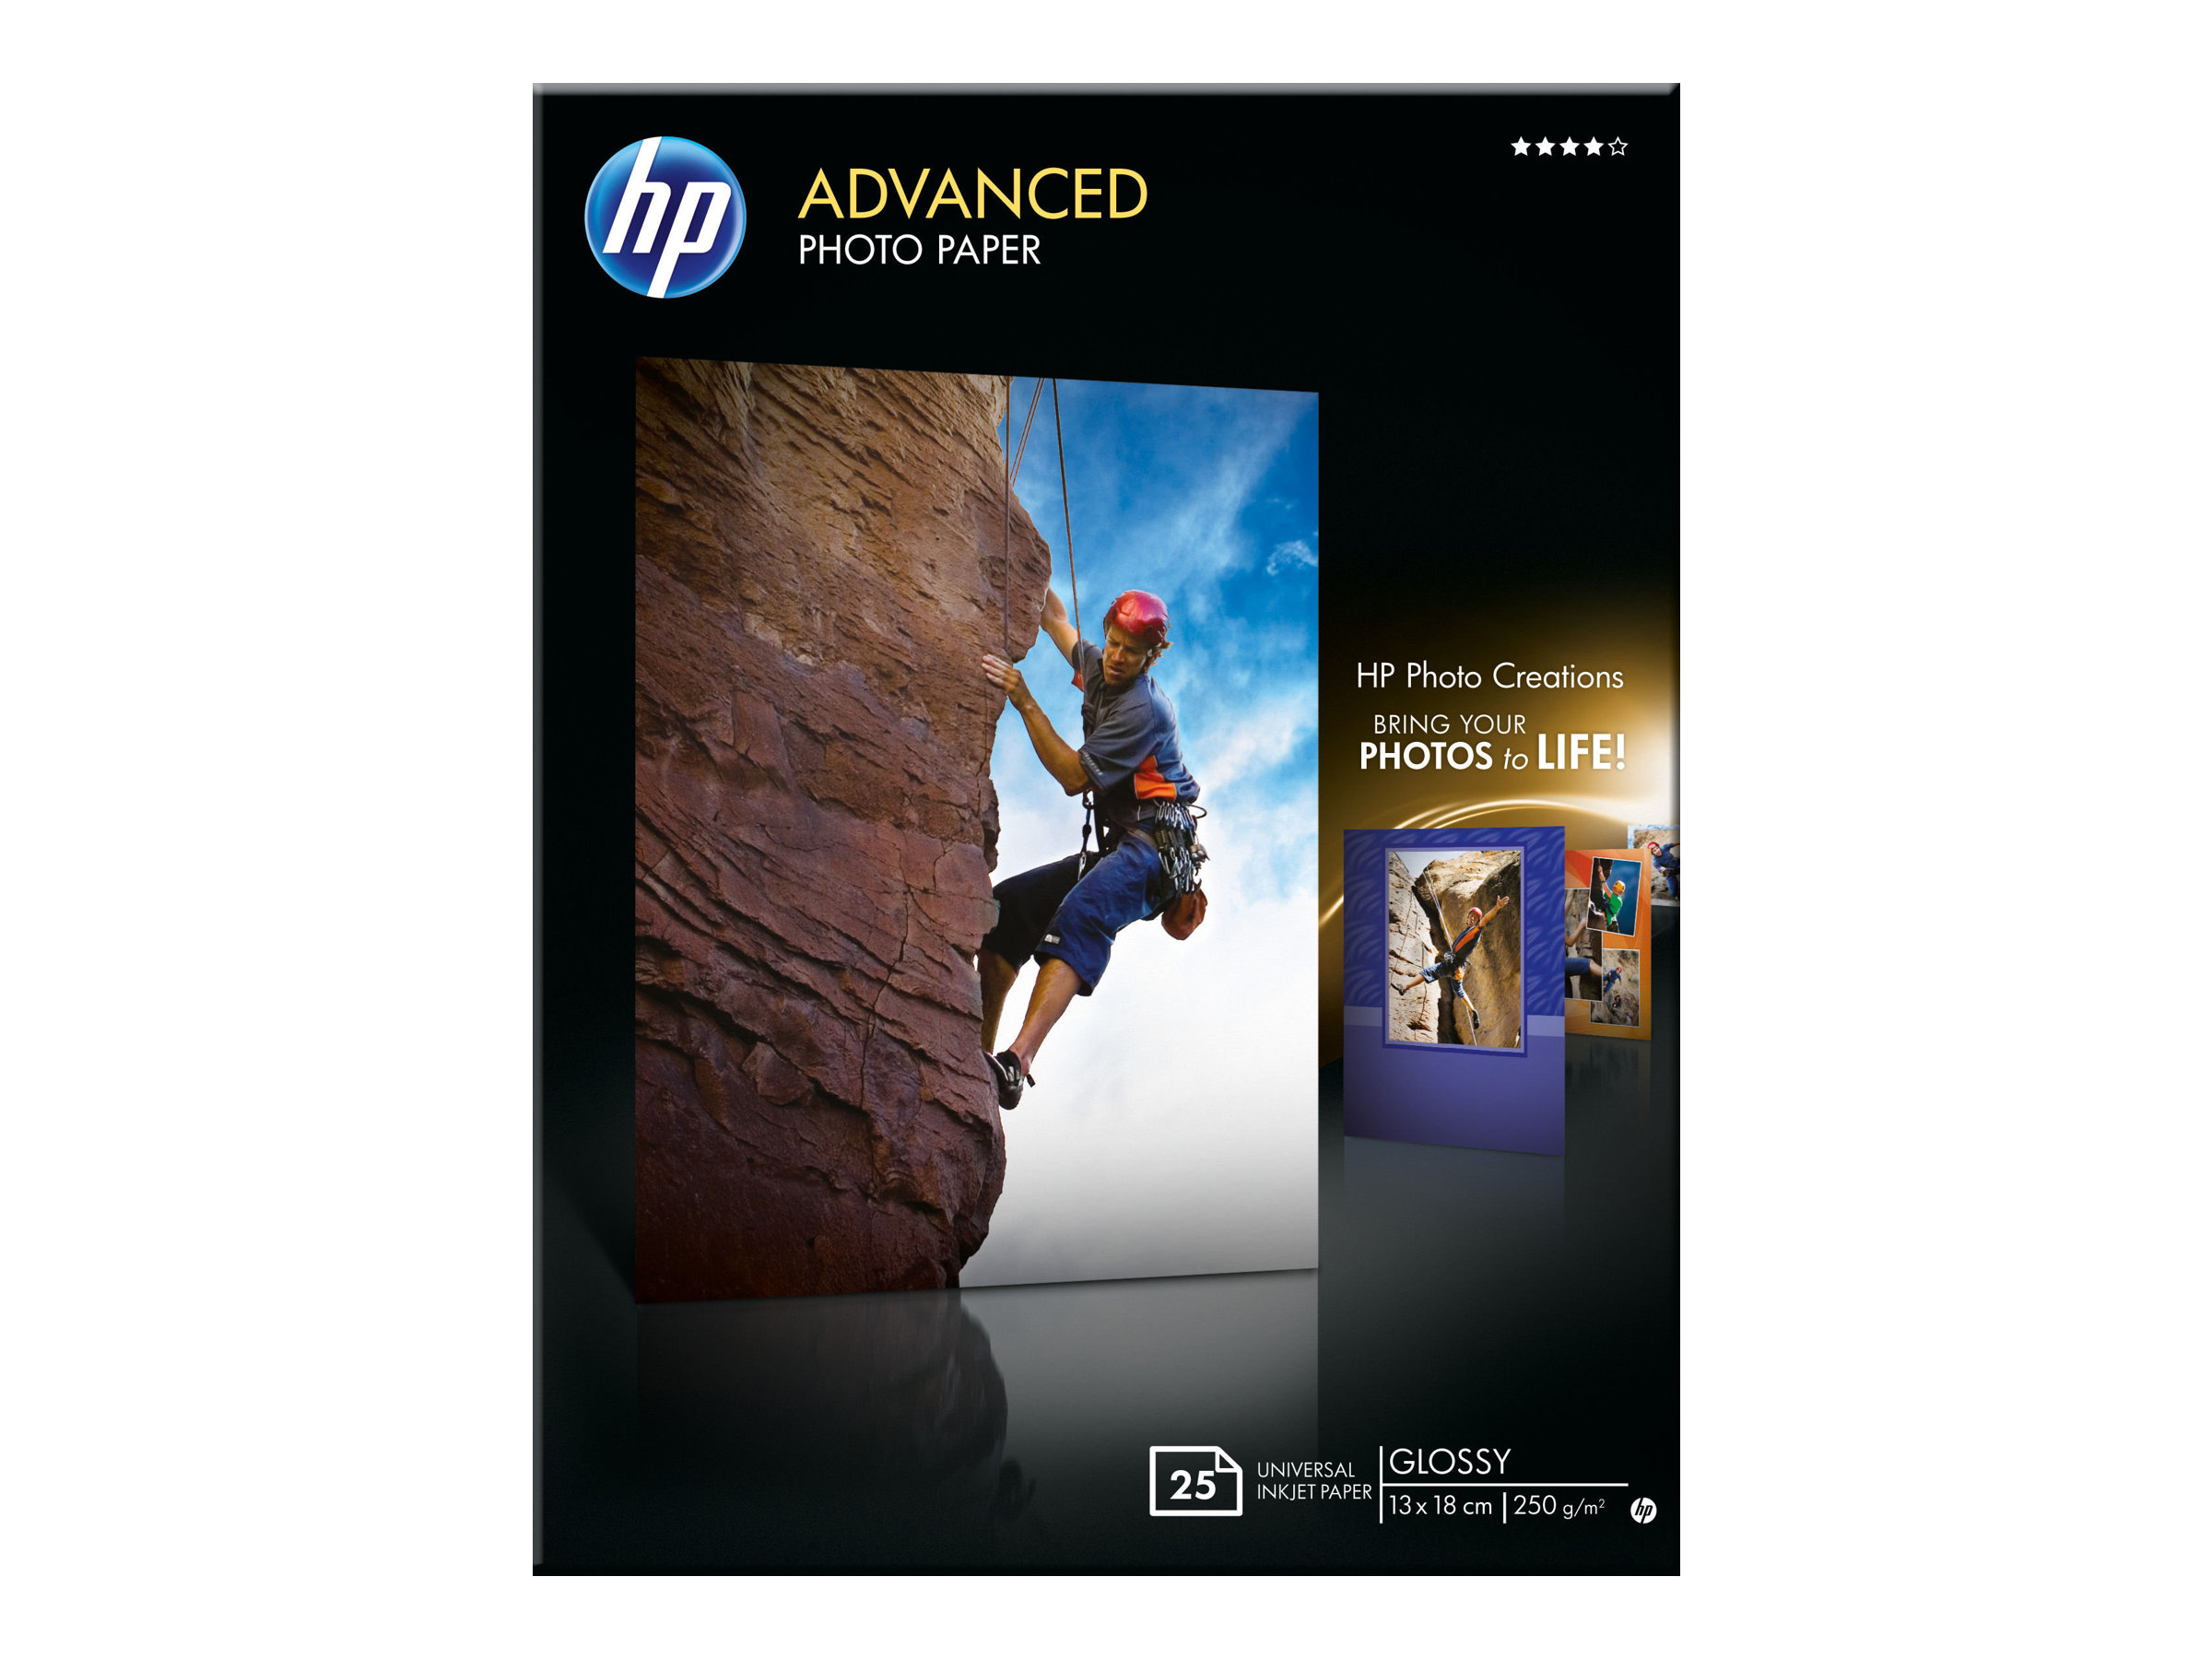 HP Advanced Glossy Photo Paper - Glänzend - 130 x 180 mm 25 Blatt Fotopapier